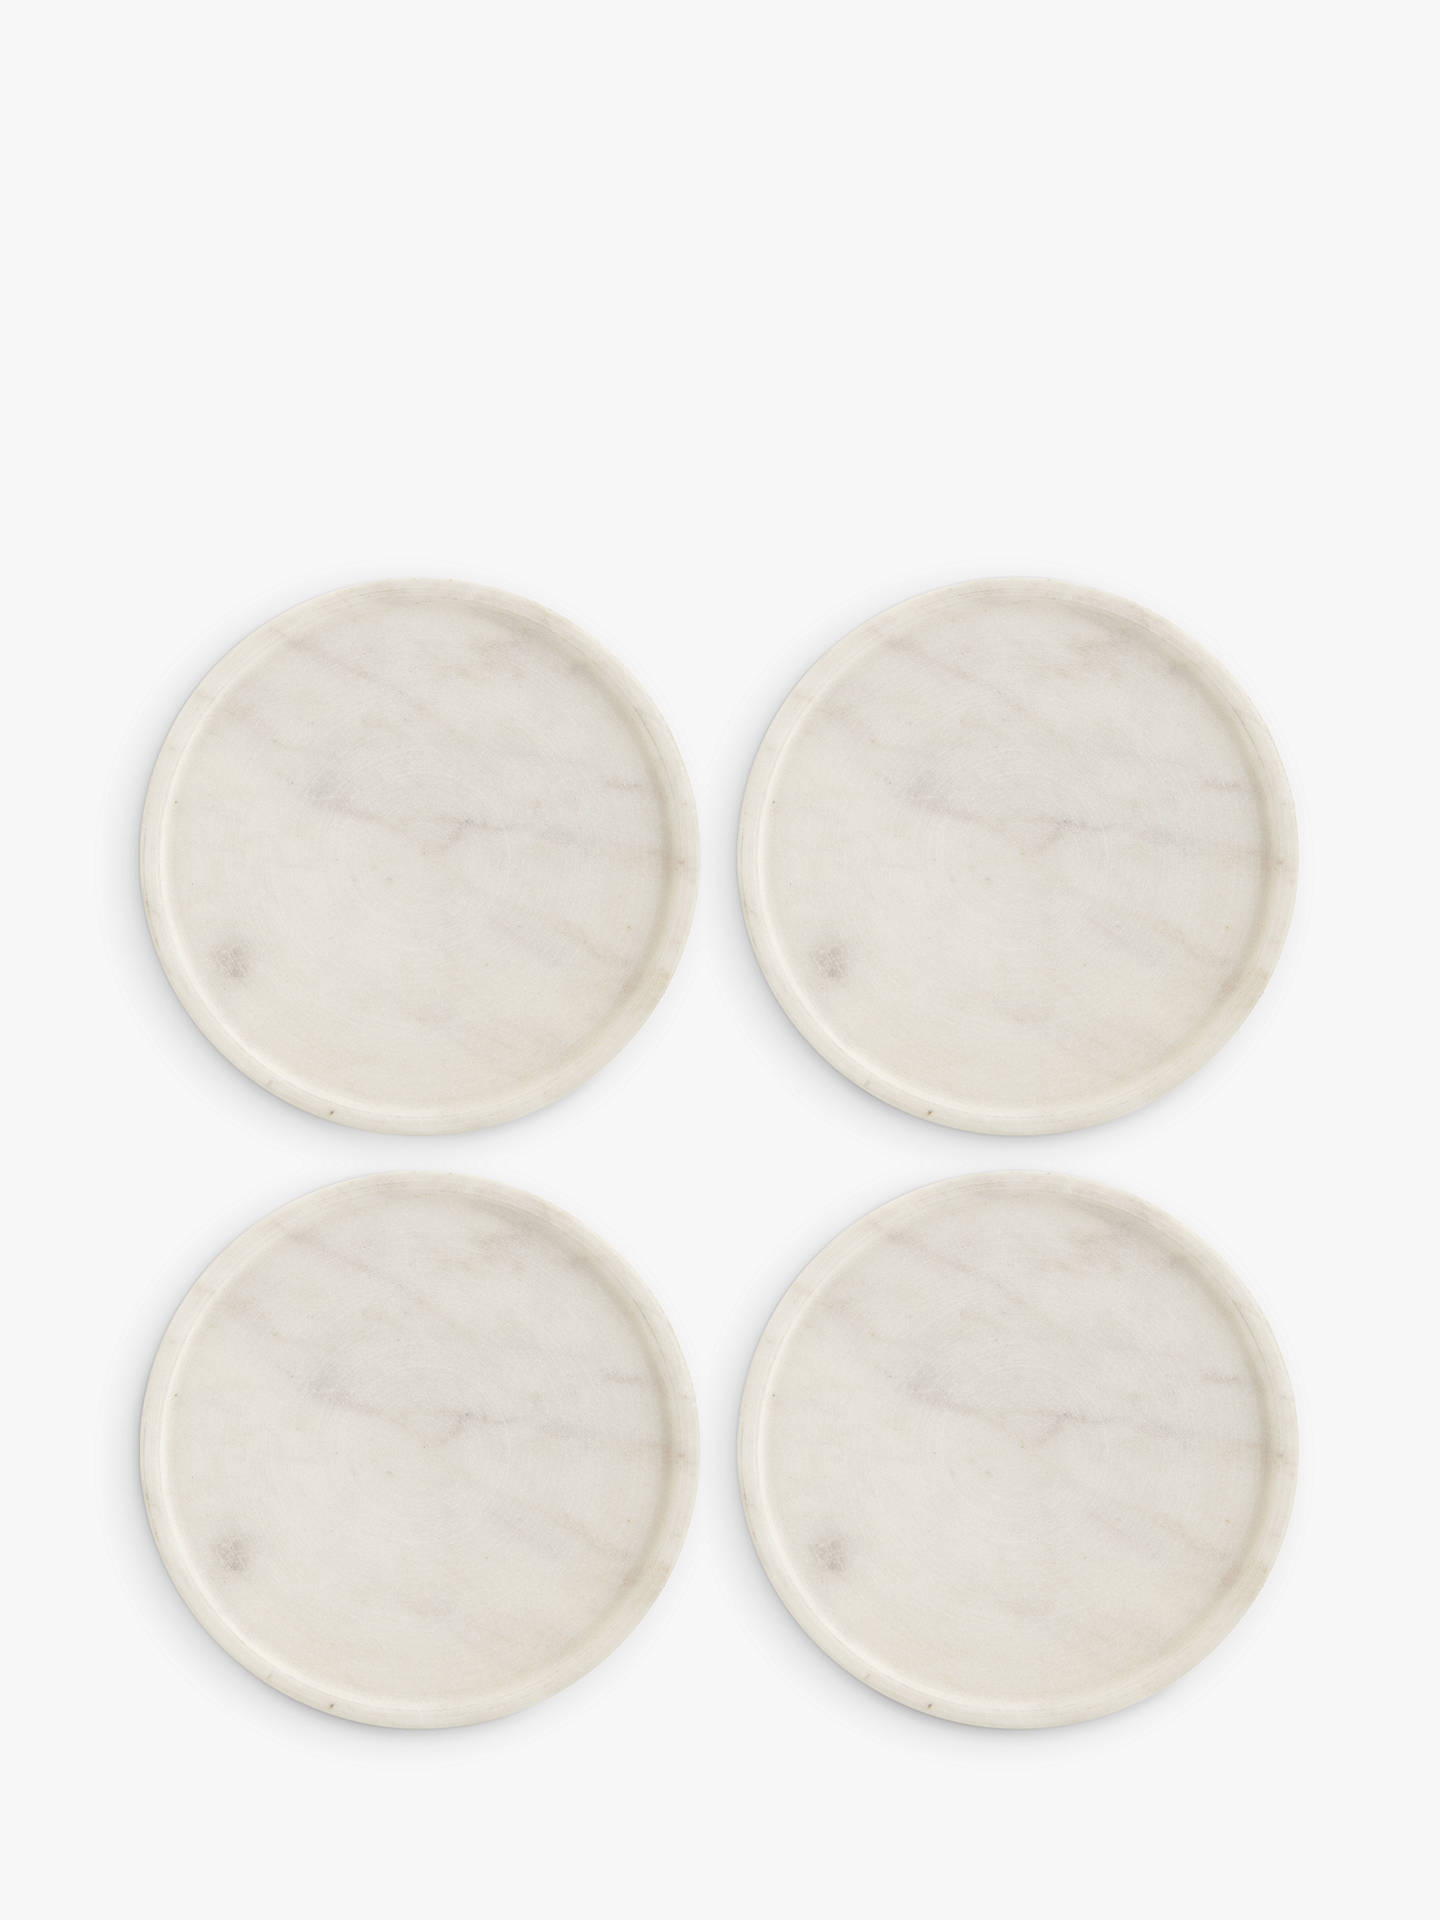 Buy Croft Collection Arundel Marble Coasters, Set of 4 Online at johnlewis.com